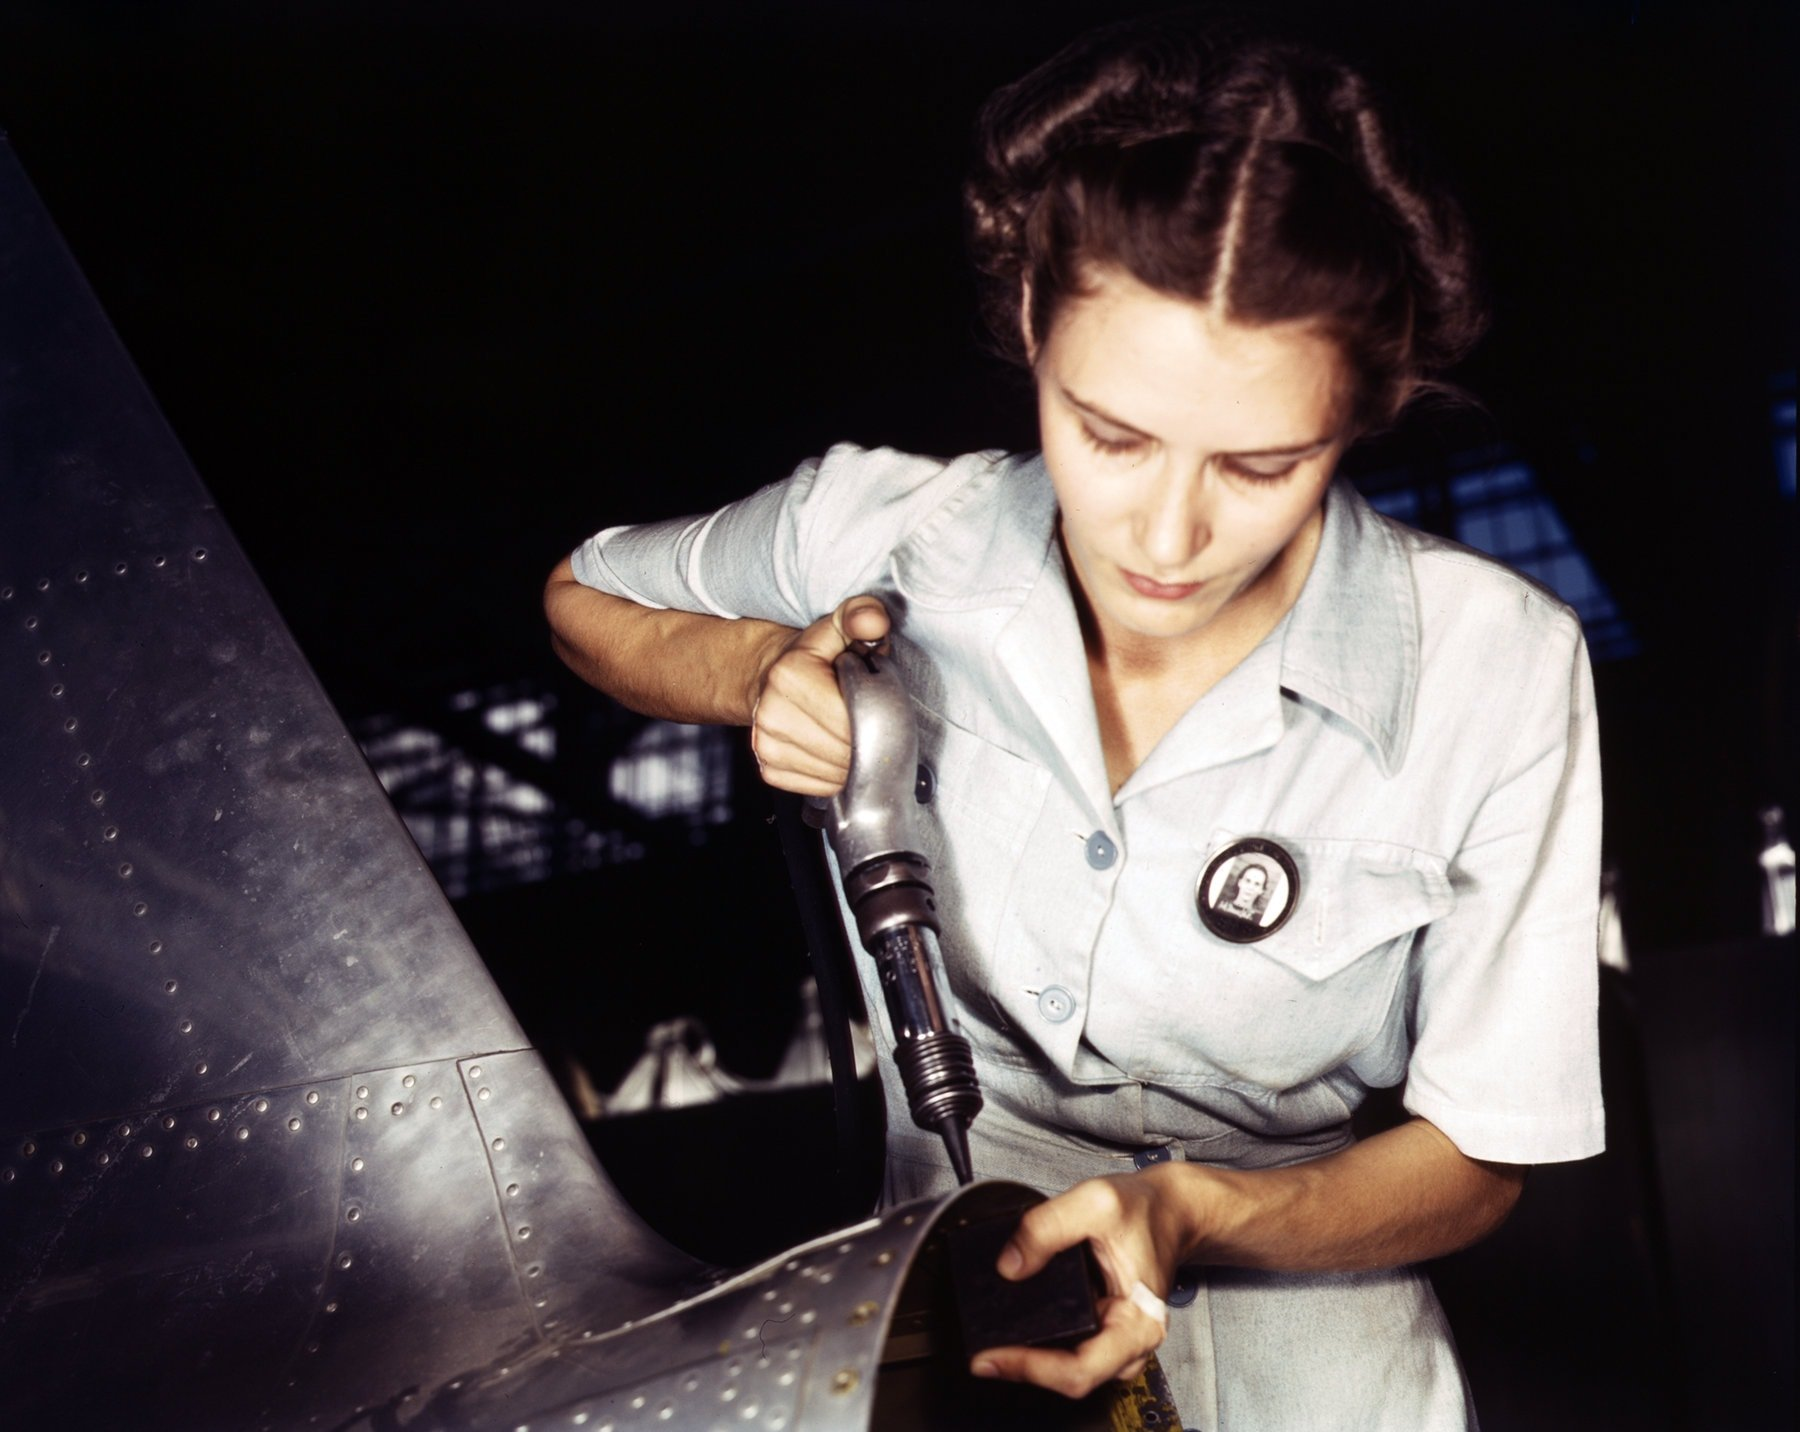 Working in airplane assembly and repair department, Texas